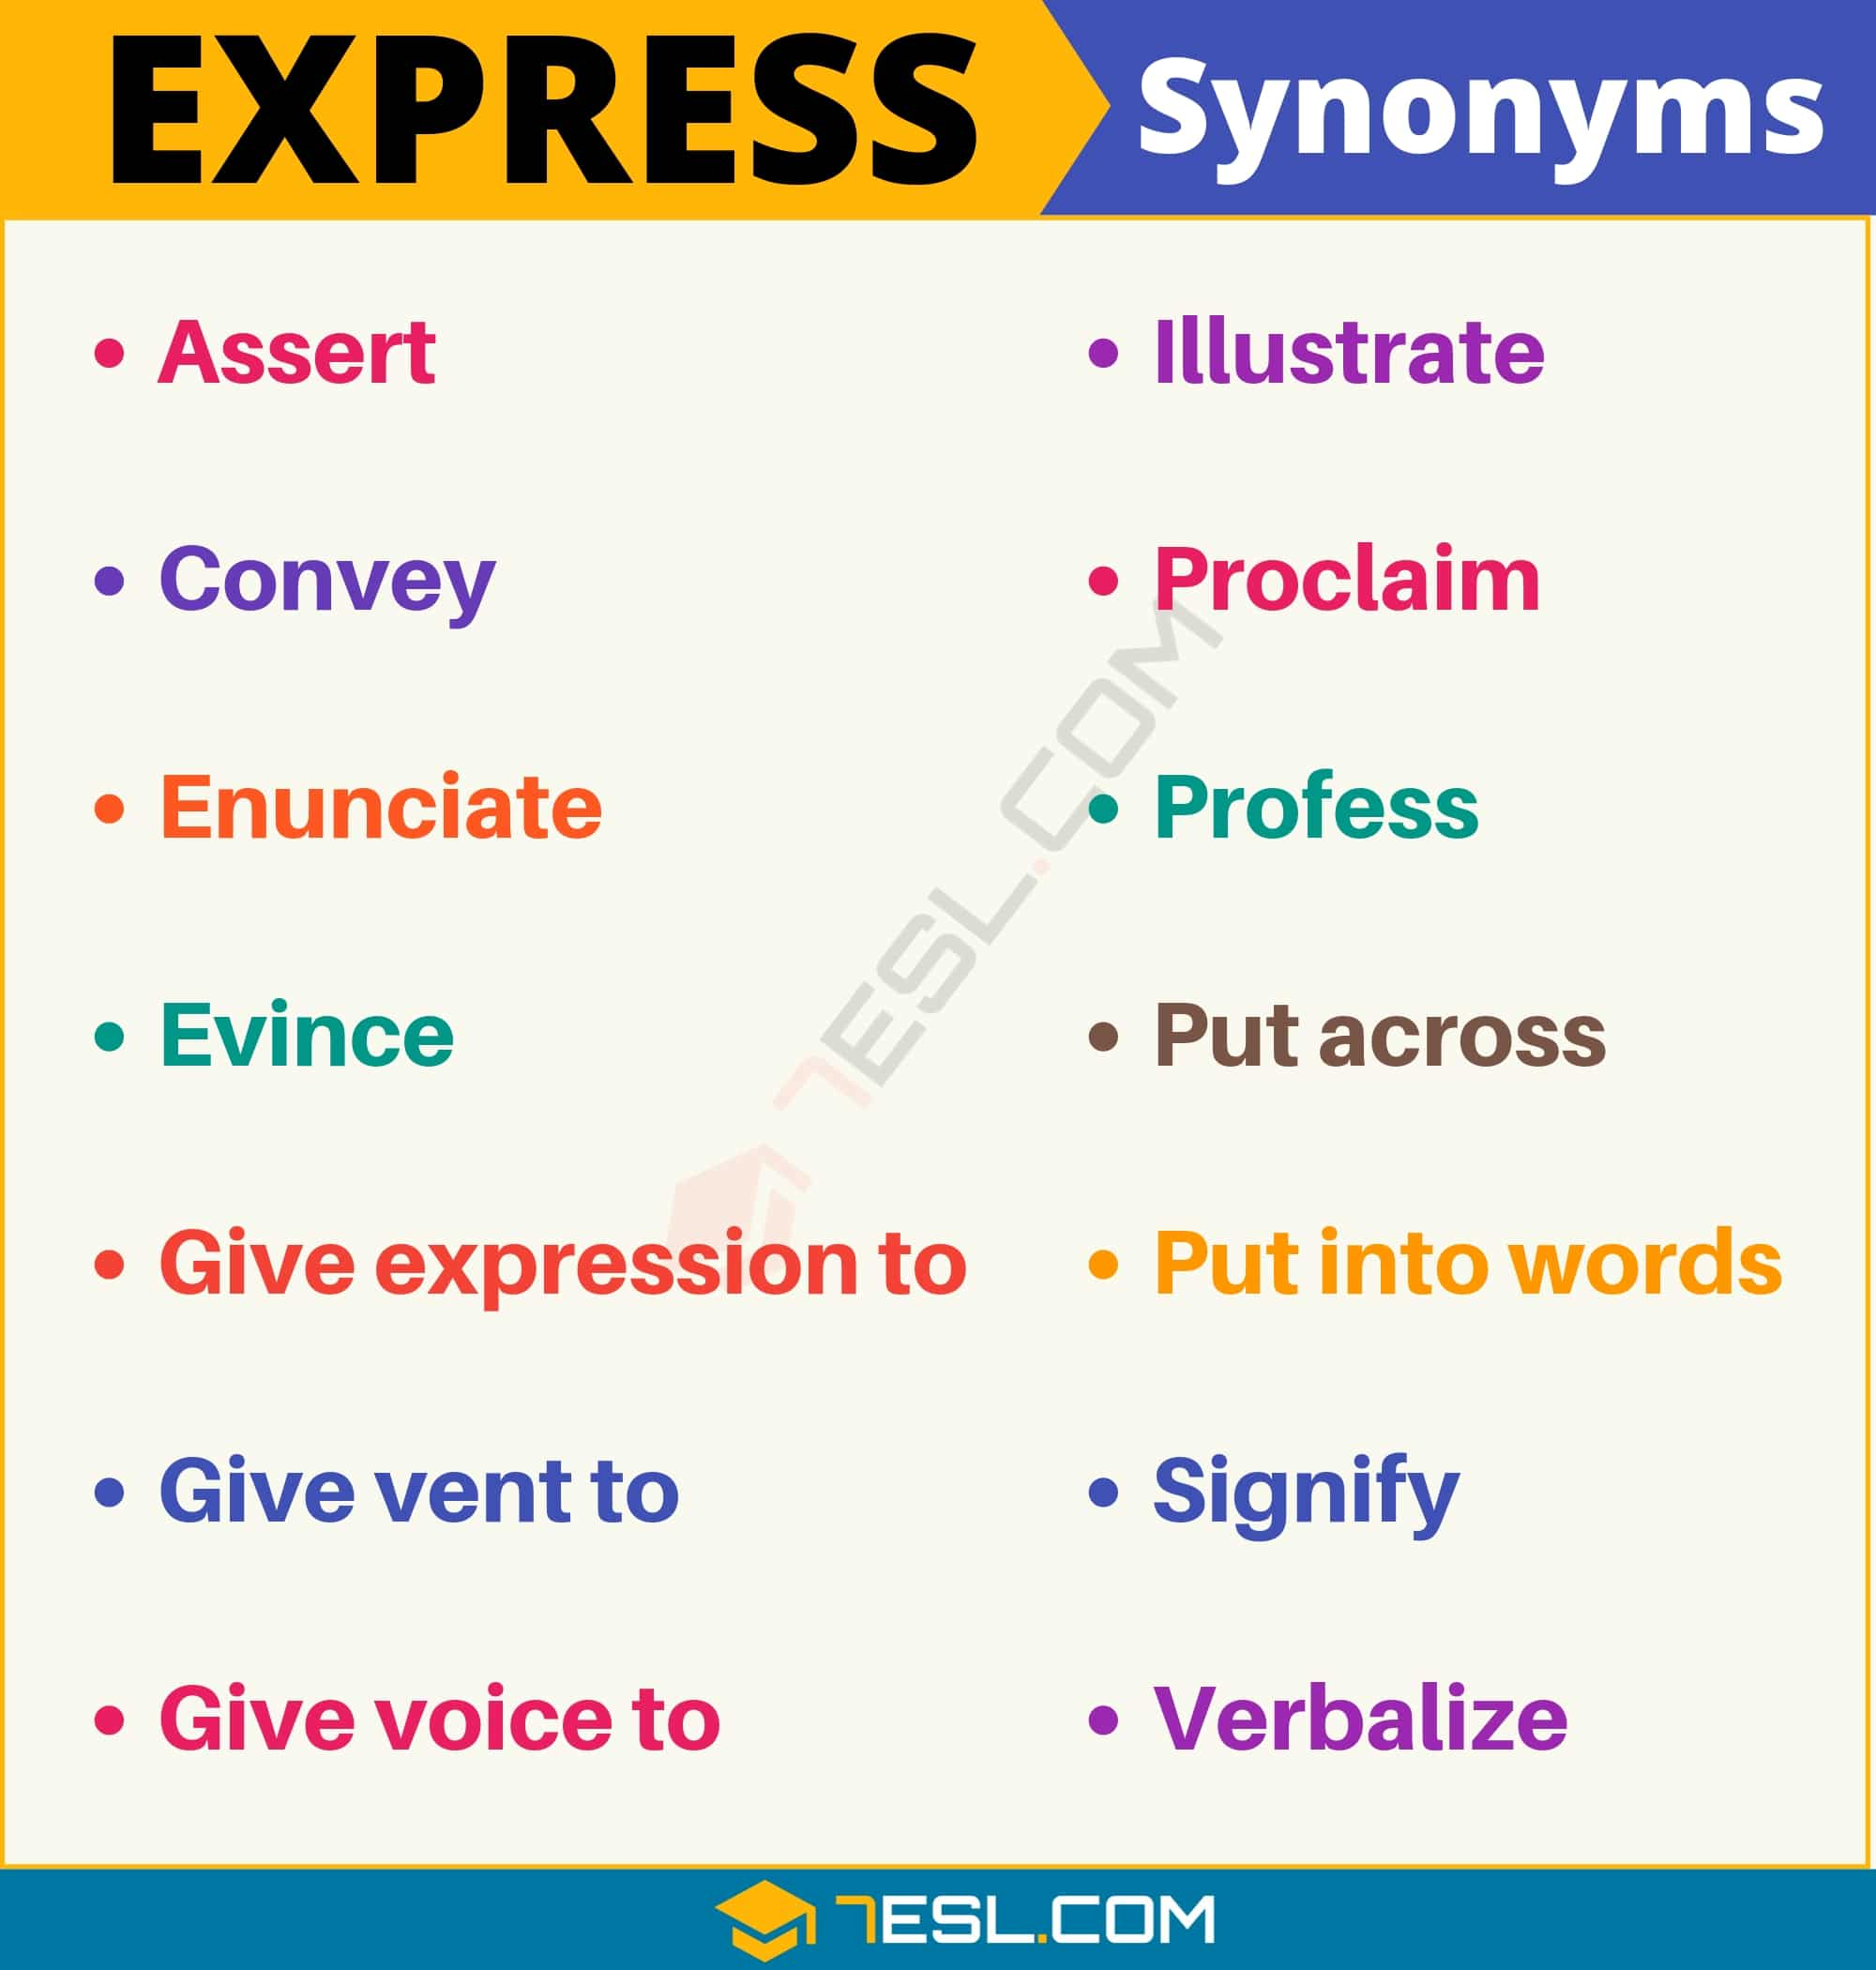 EXPRESS Synonym: List of 15 Synonyms for Express in English